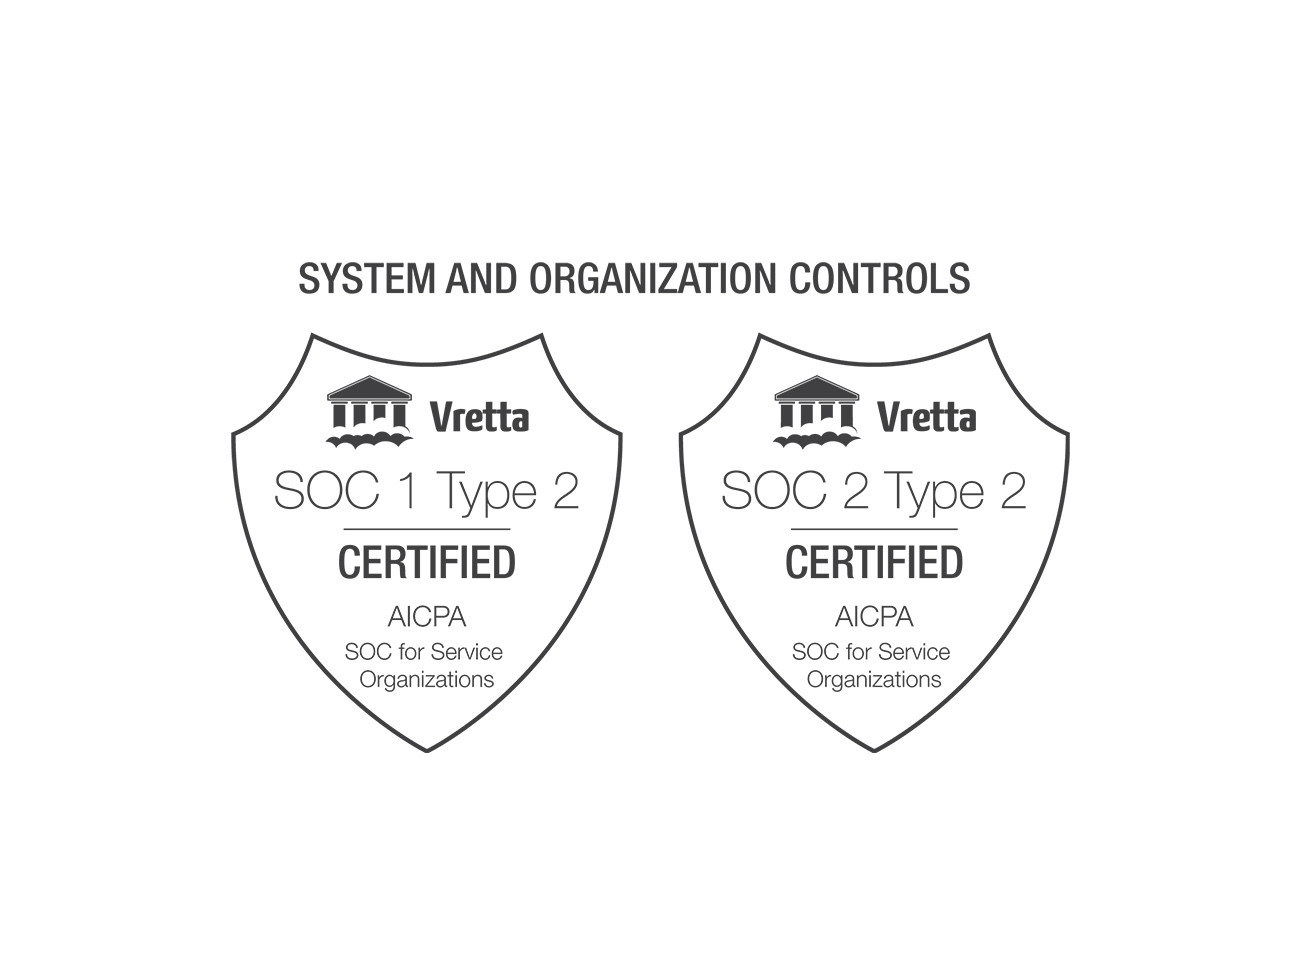 Vretta Achieves System and Organization Controls (SOC) Security Compliance Standards